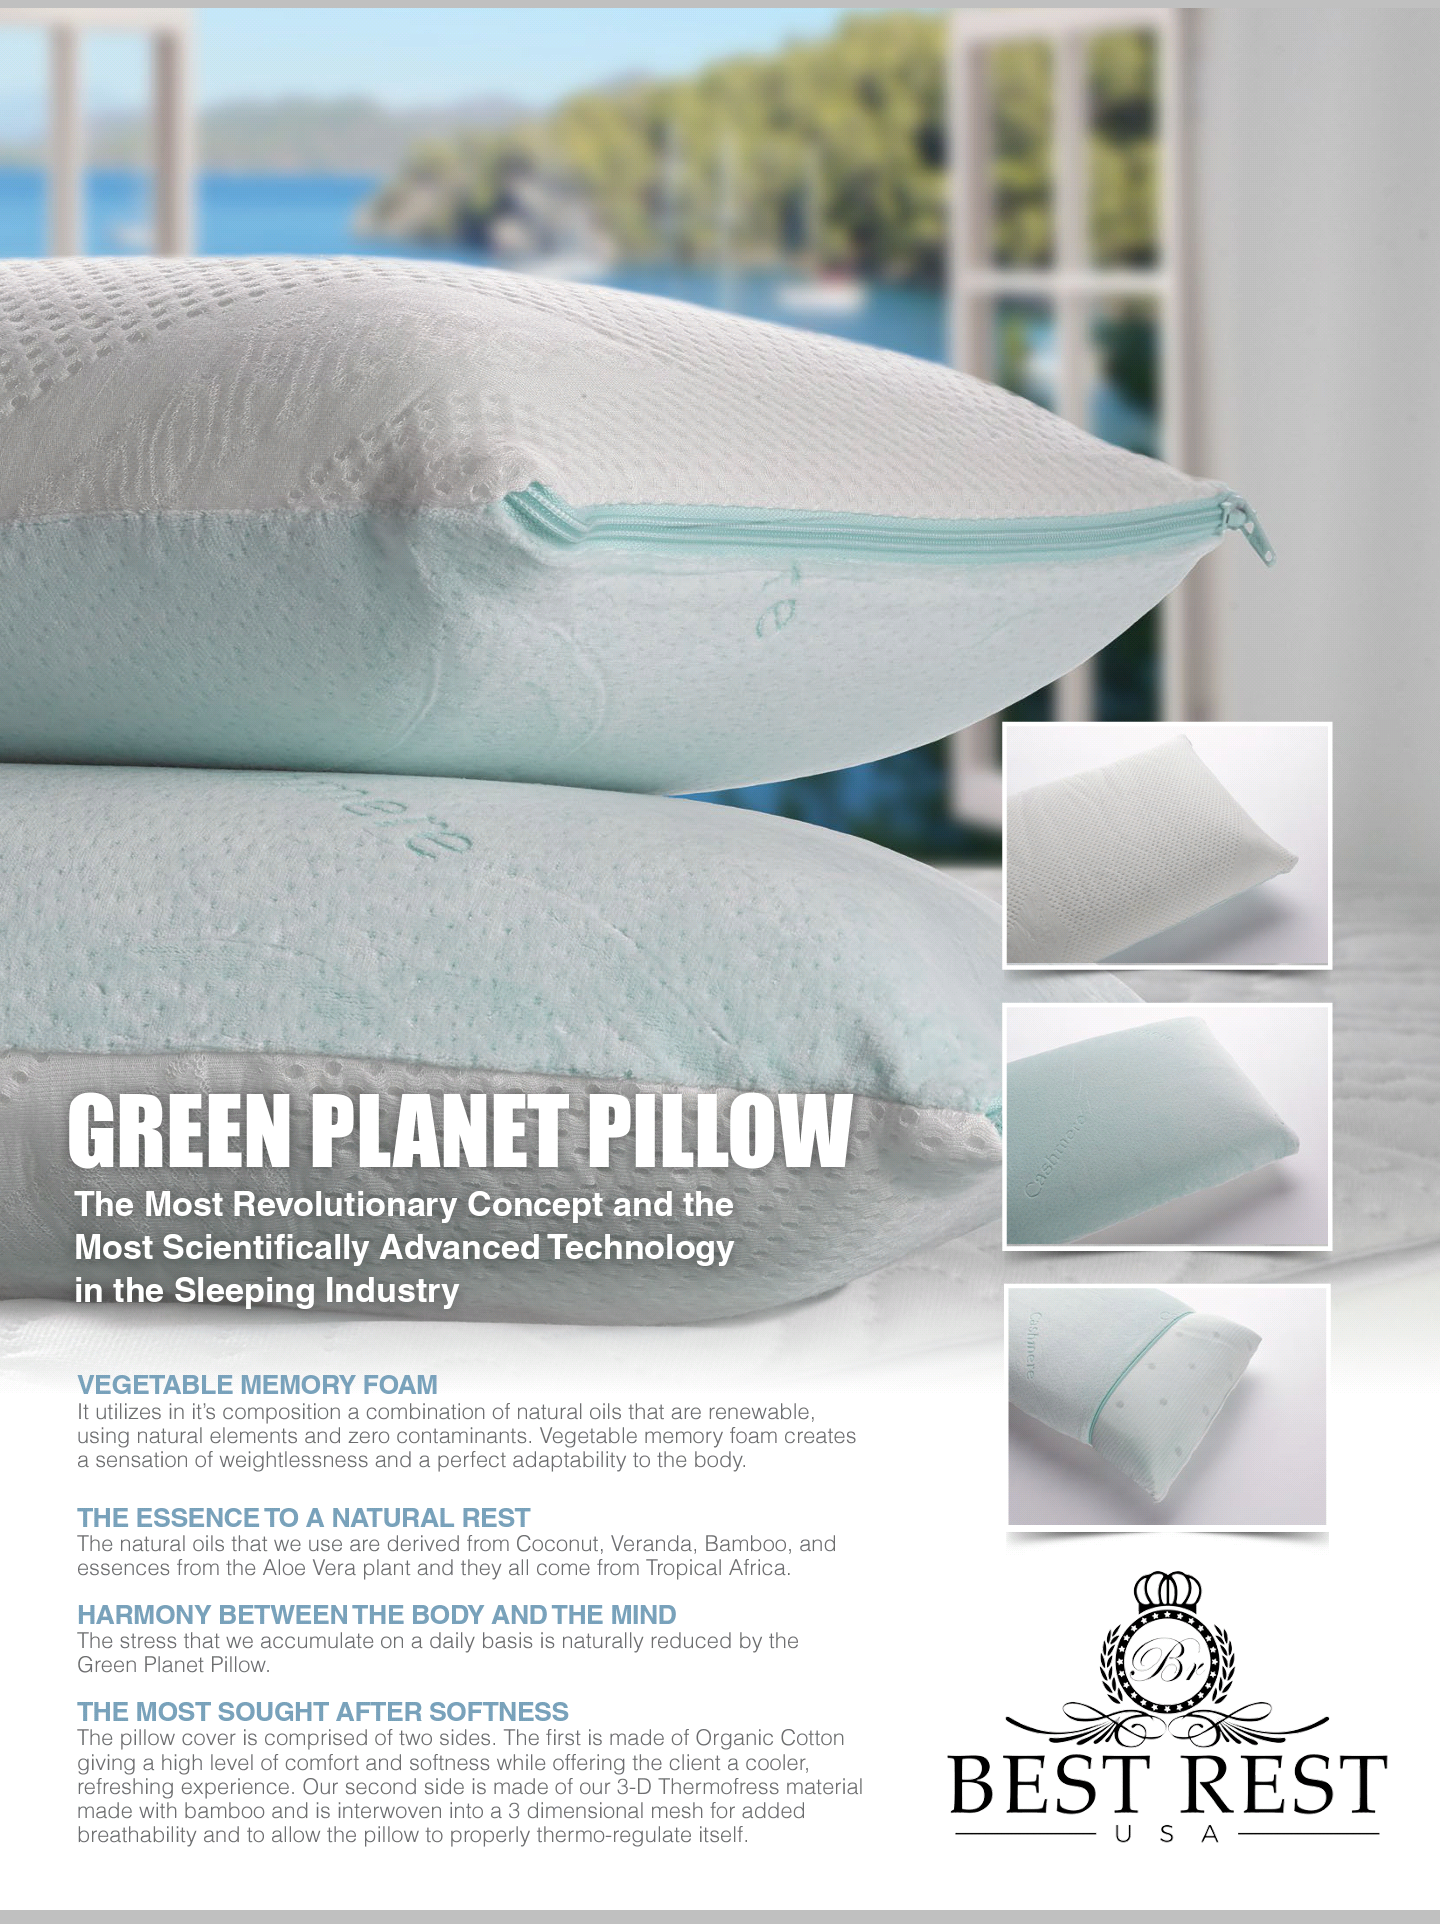 Green Planet Pillow